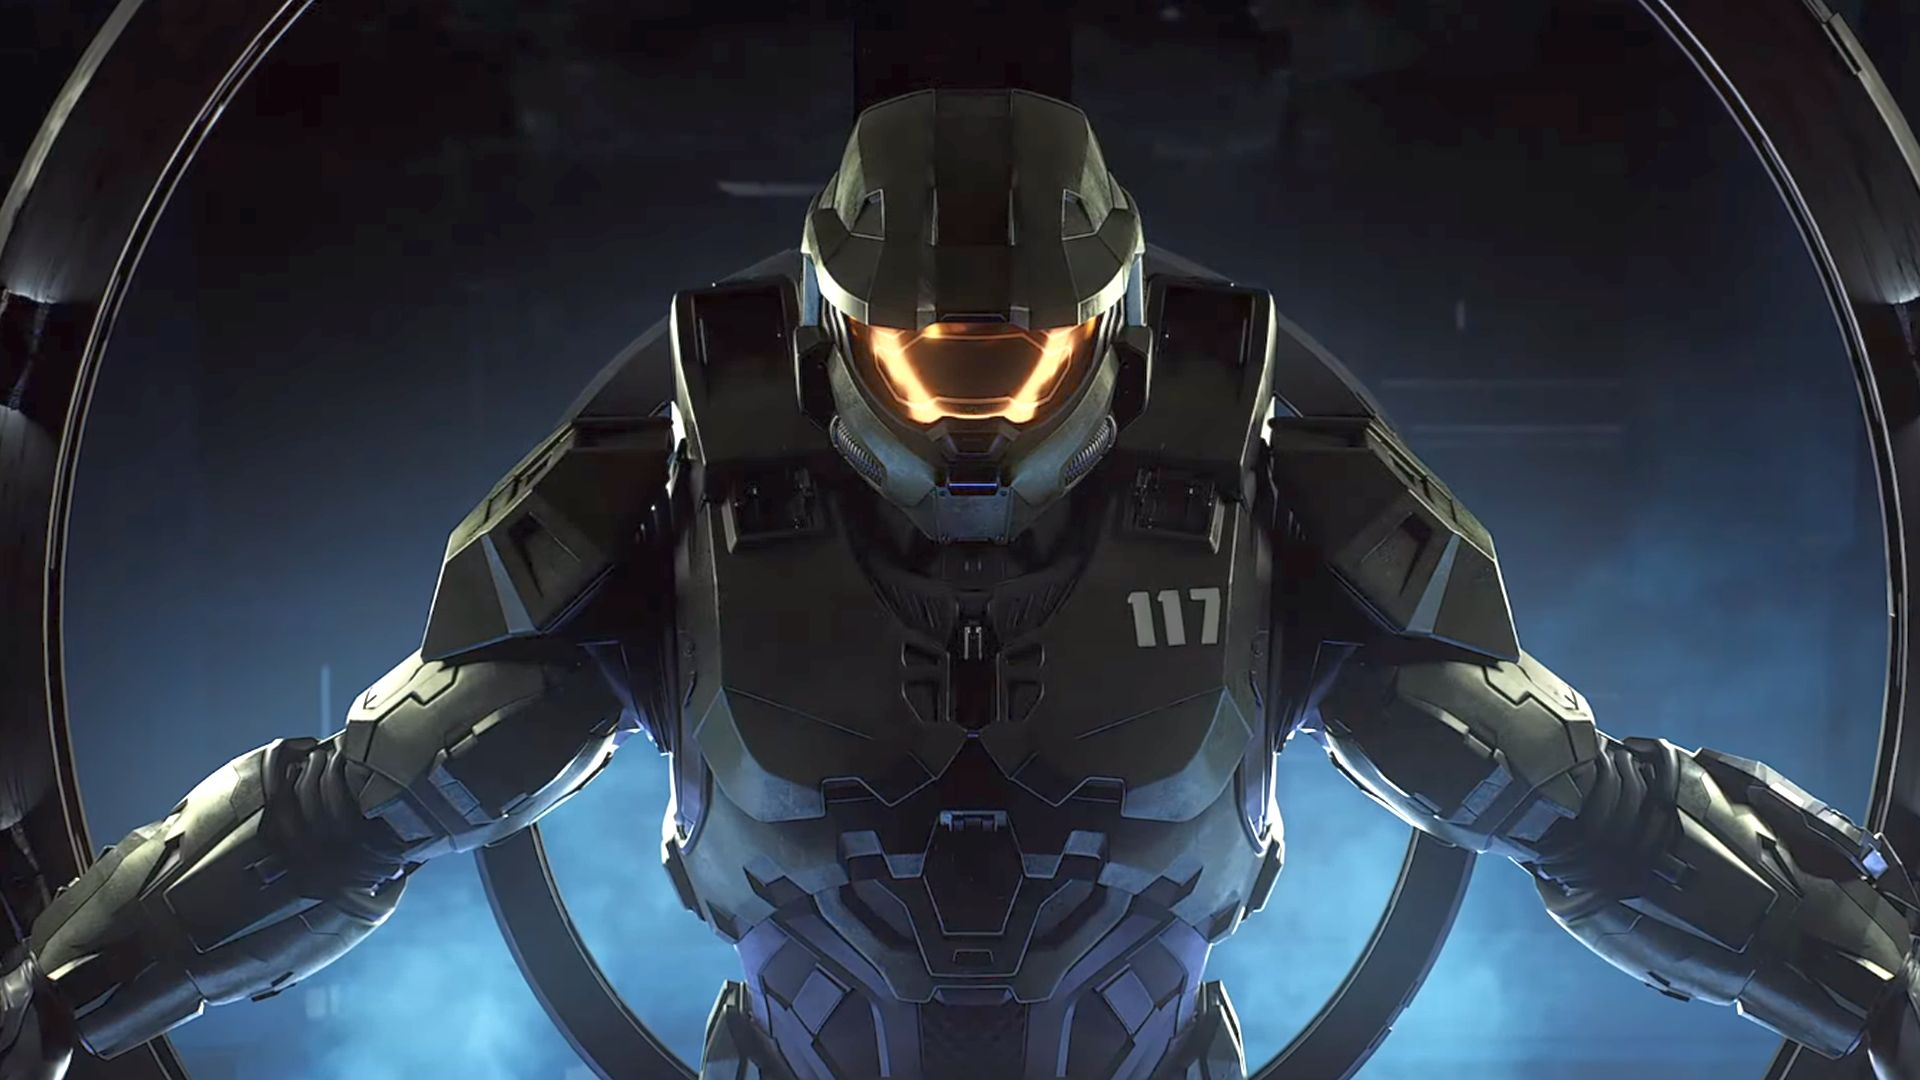 Halo Infinite - Halo Infinite is coming to Steam | PCGamesN